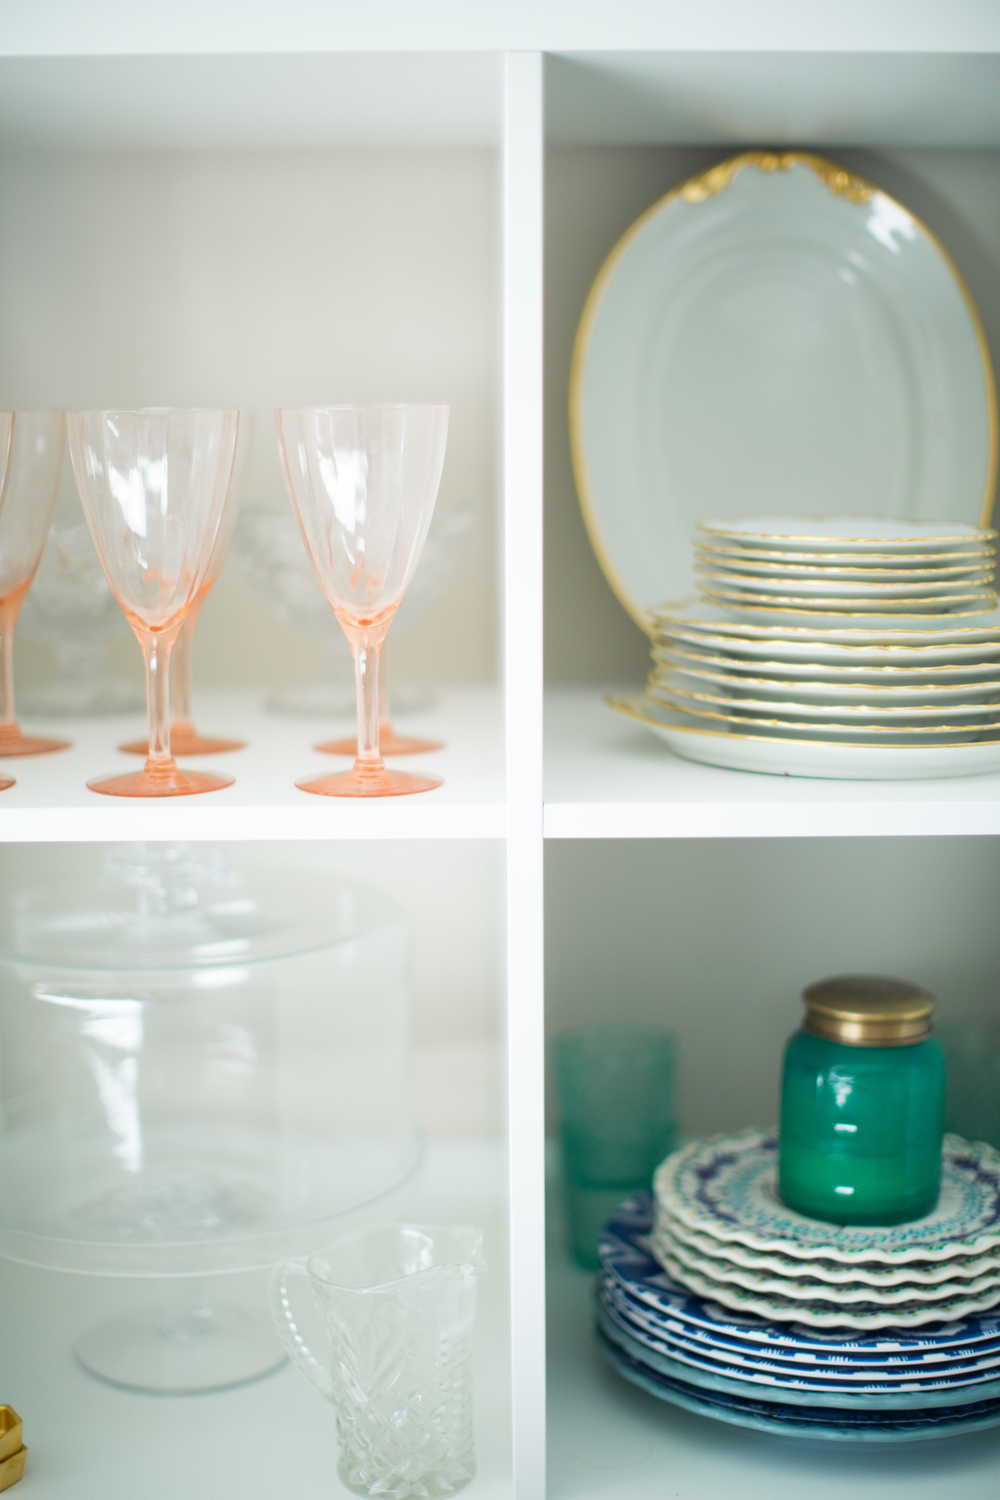 Dining room inspiration | Southern home style | Shelf styling | The School of Styling - http://www.theschoolofstyling.com